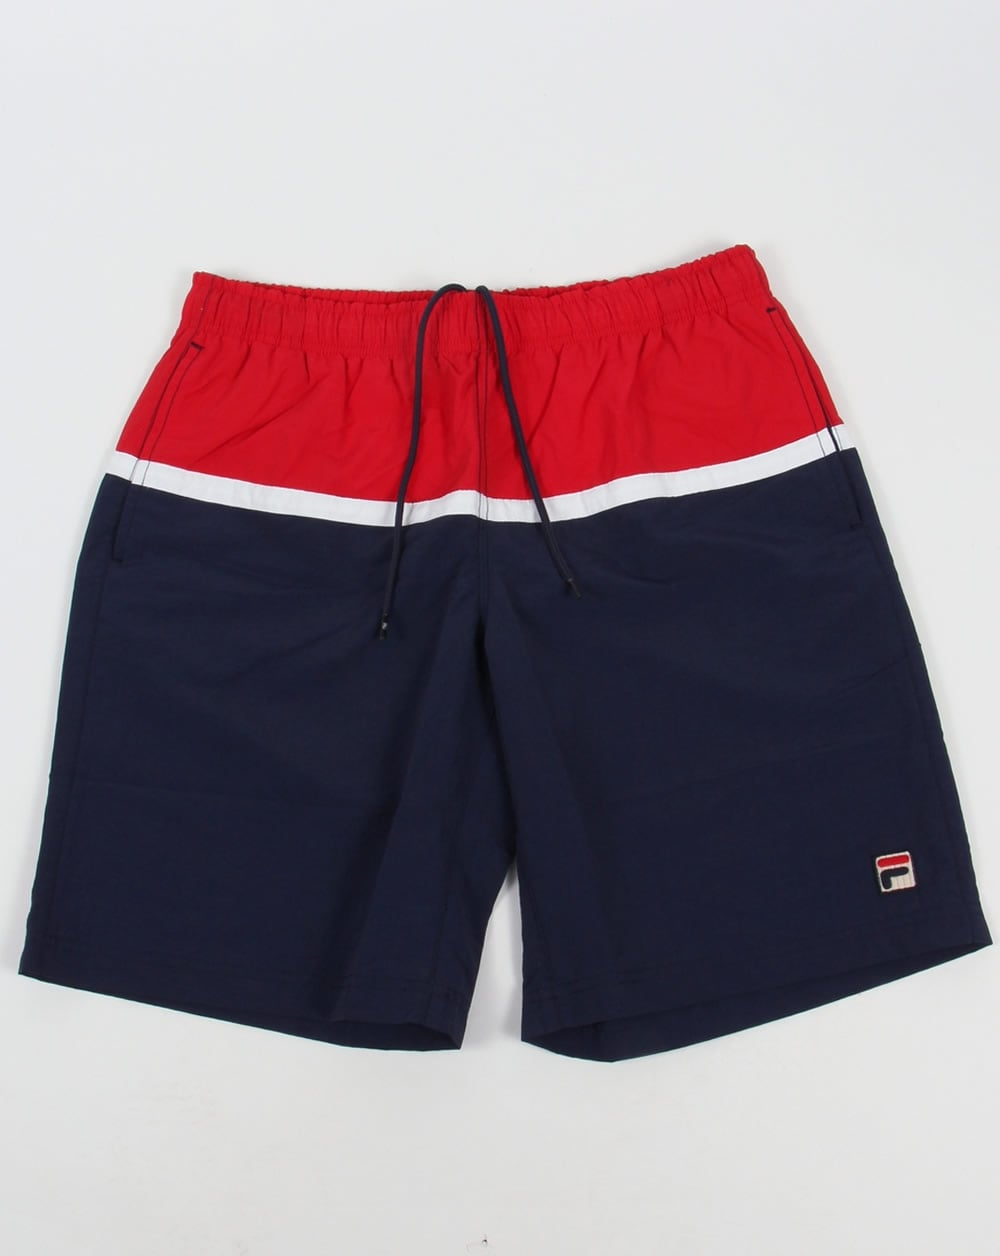 Fila Vintage Nargiso Swim Shorts Navy Beach Swimmers Mens